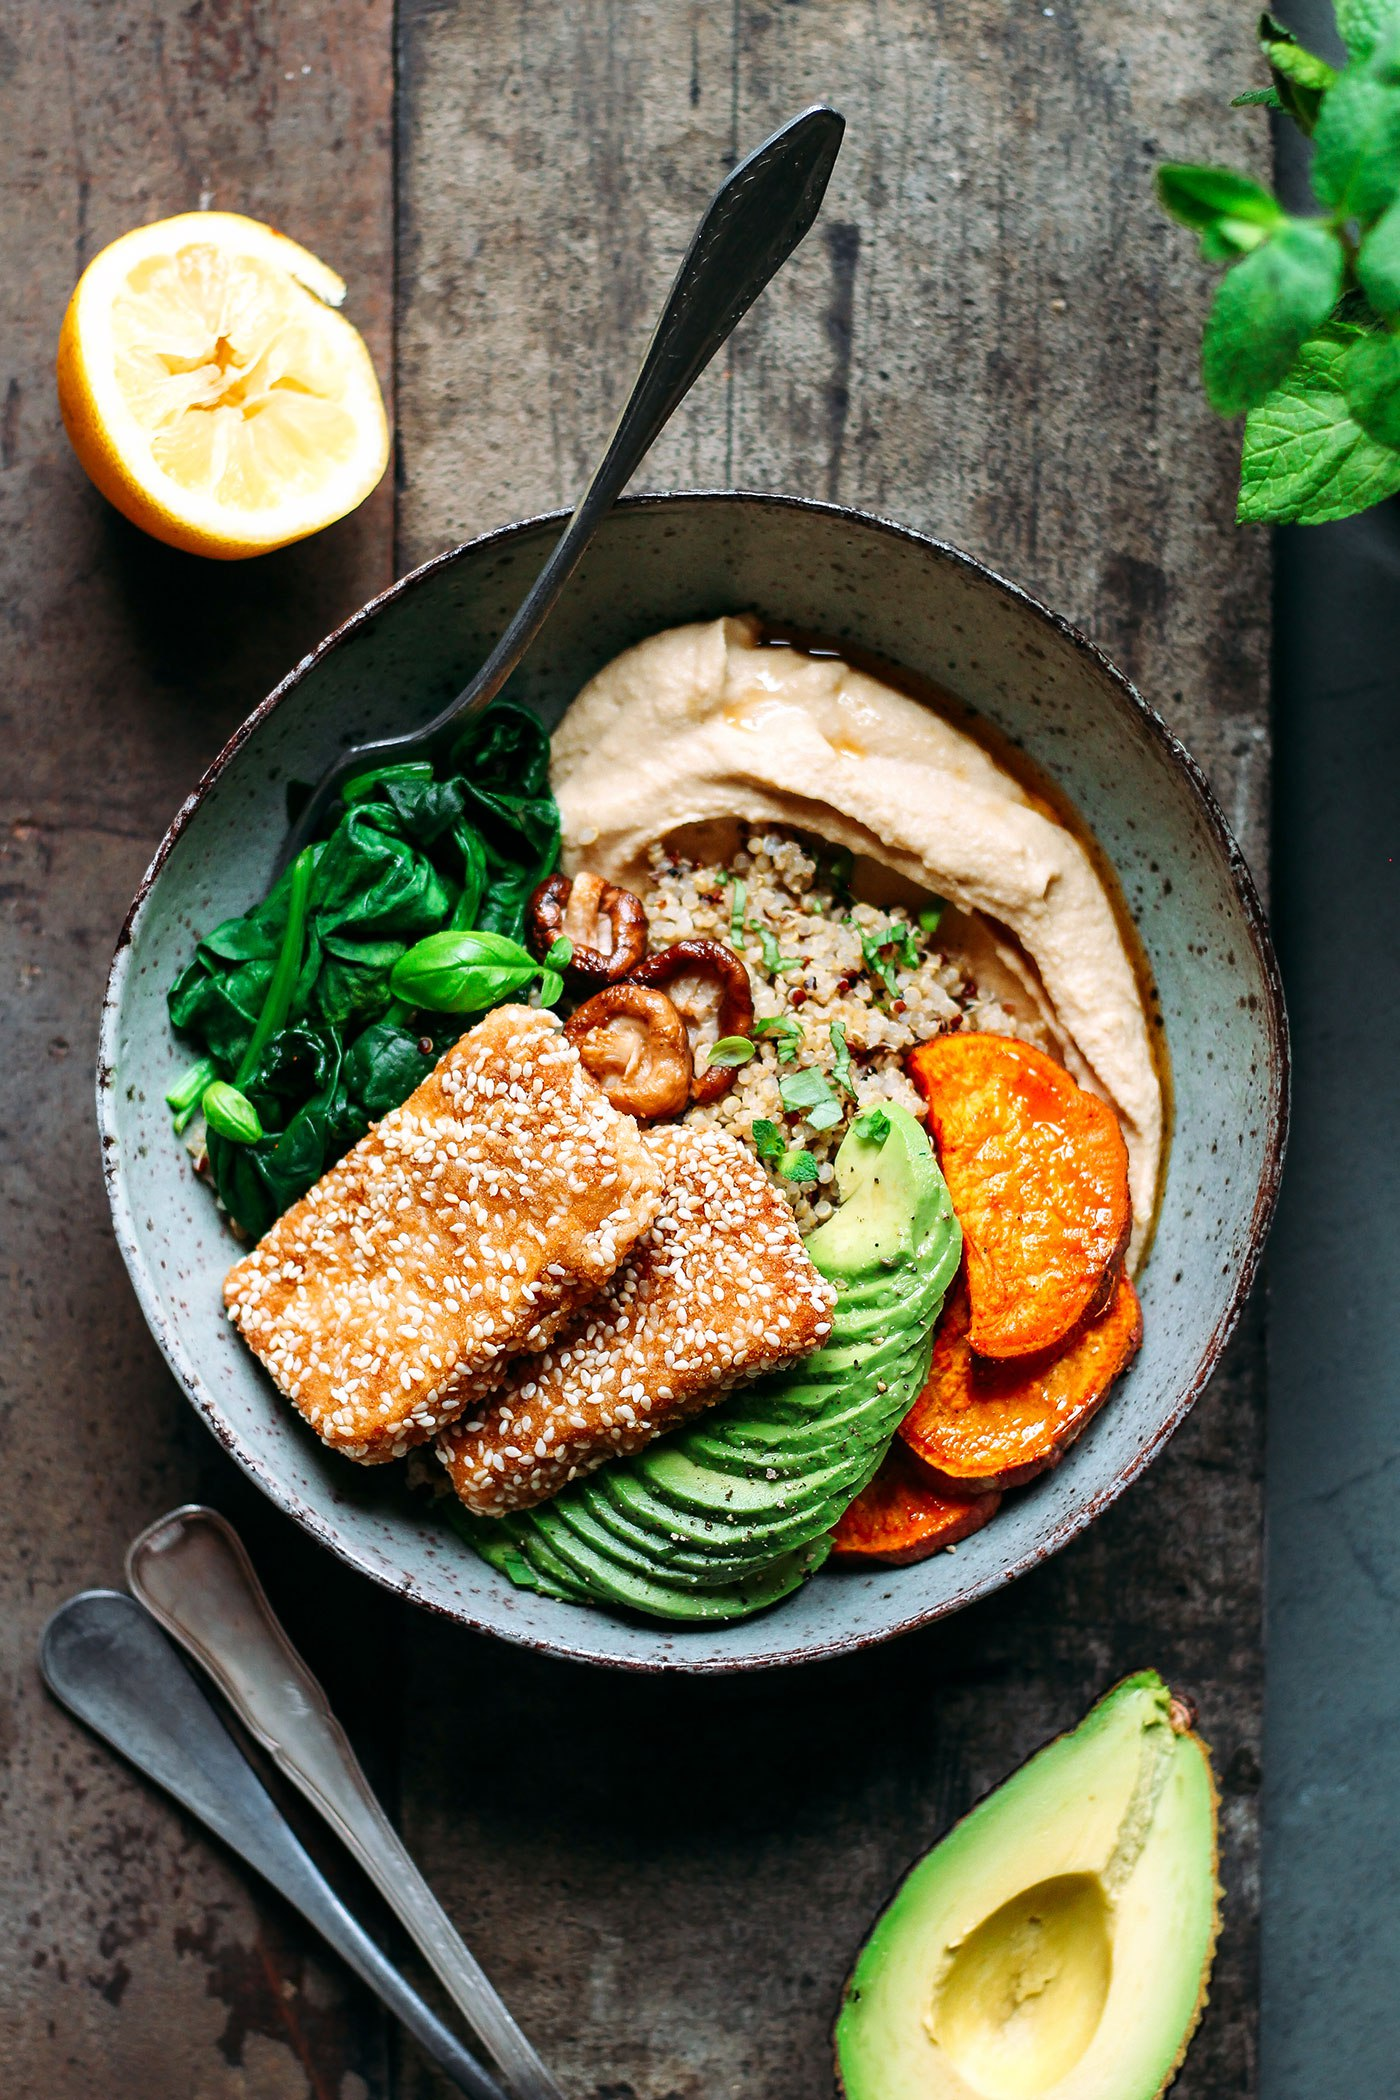 Cool Mom Eats weekly meal plan: Sesame Crusted Hoisin Crusted Tofu Buddha Bowls at Full of Plants